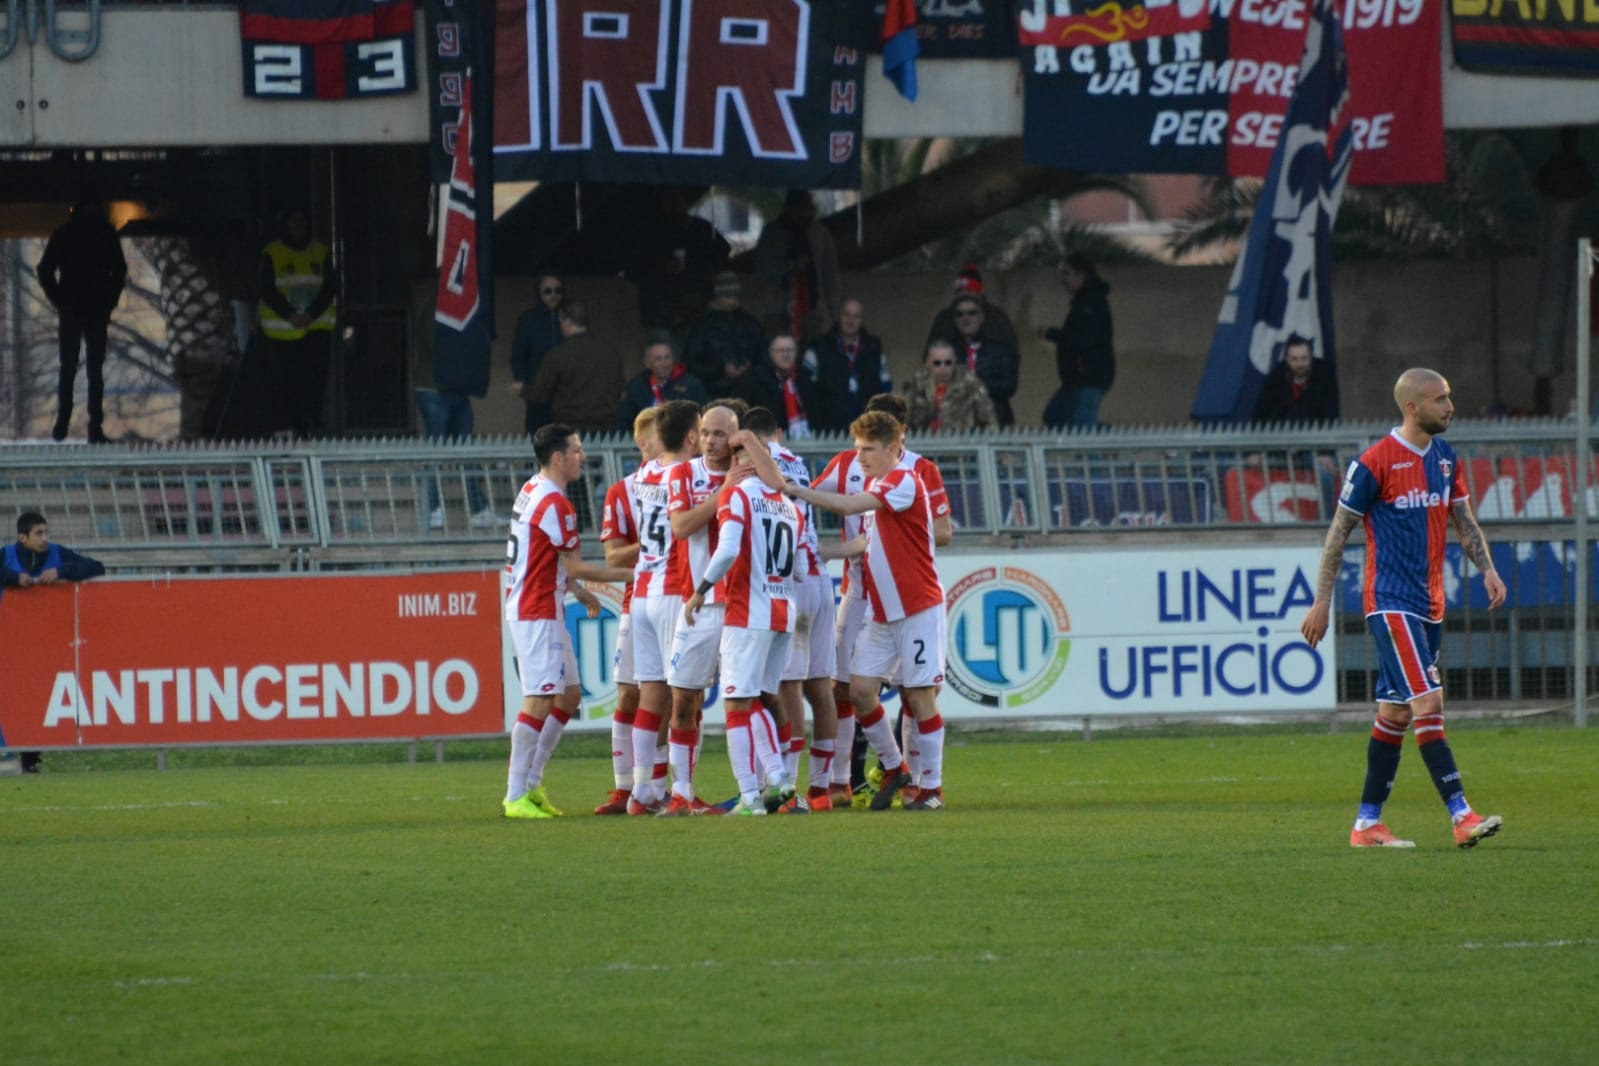 https://www.rivieraoggi.it/wp-content/uploads/2019/03/Terzo-gol-Vicenza.jpg